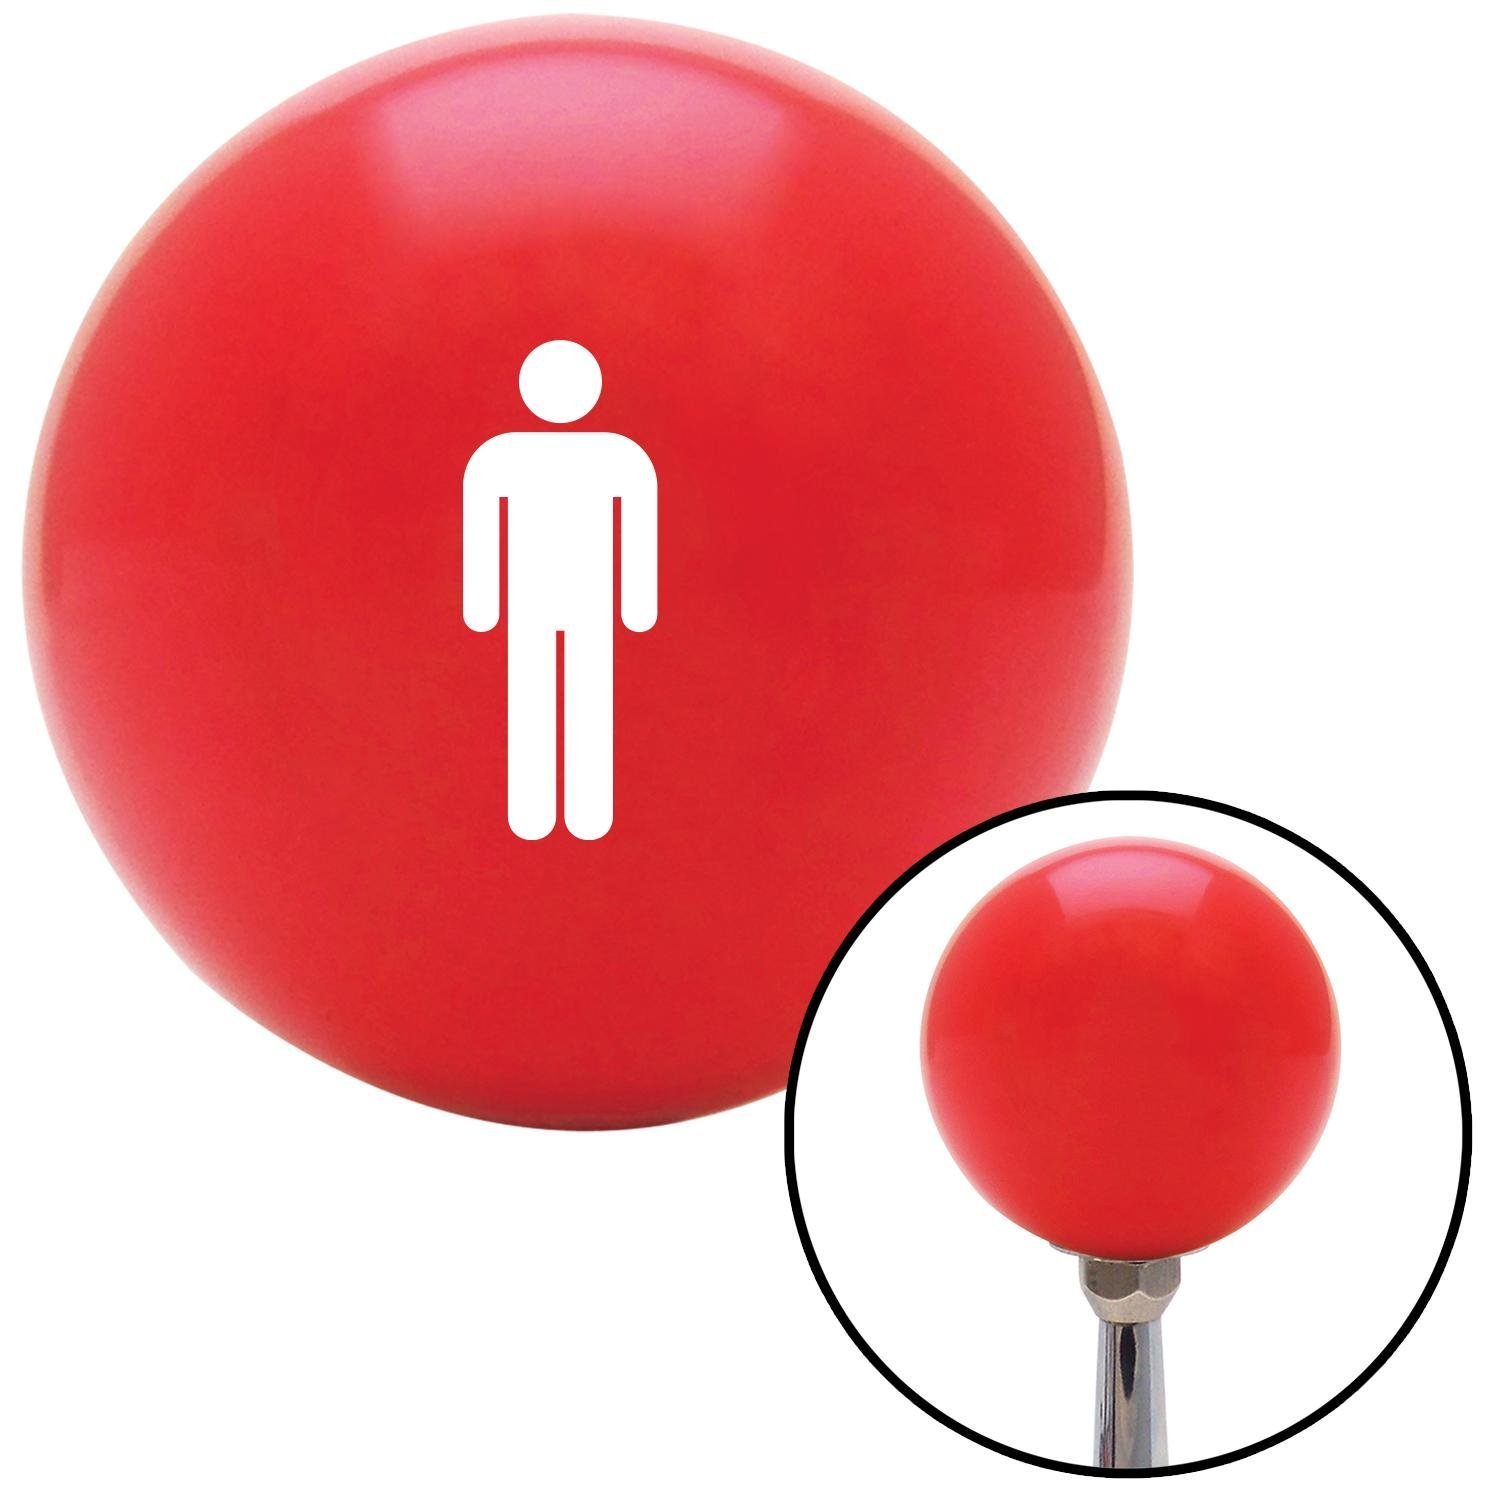 White Man American Shifter 99147 Red Shift Knob with M16 x 1.5 Insert